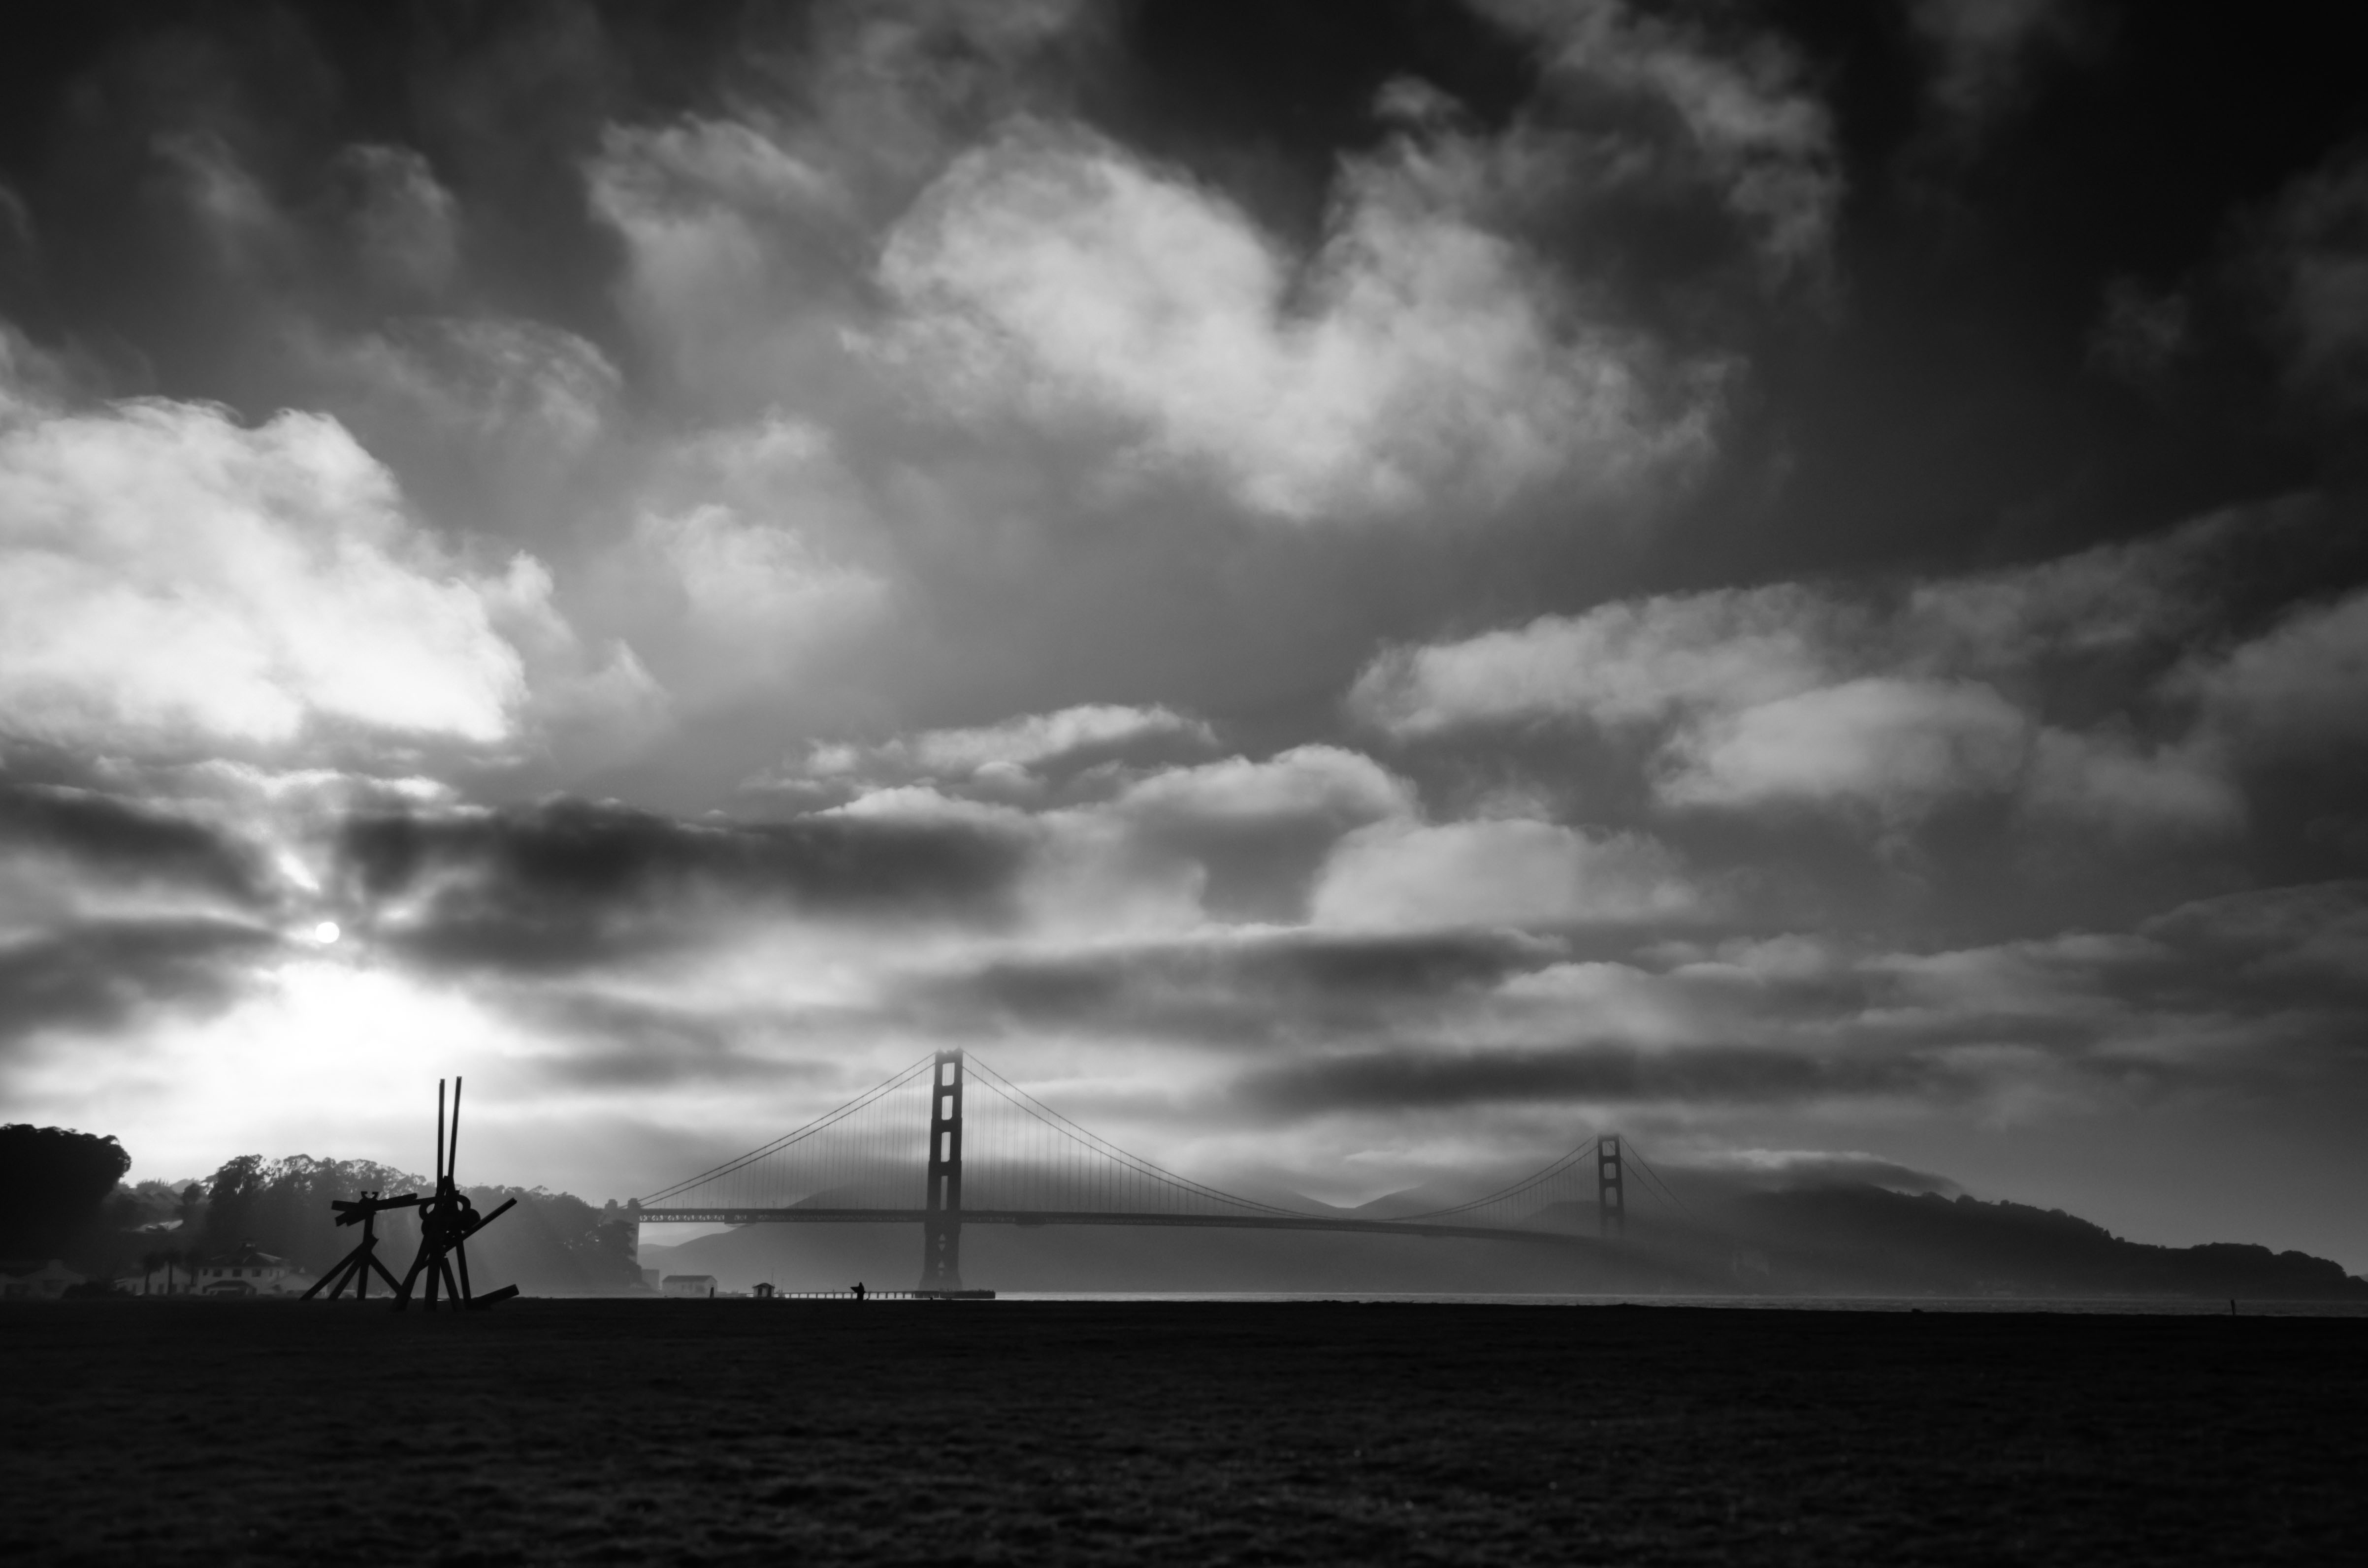 ART OF TRANSIT: Golden Gate Bridge, taken earlier this month on my way back from Oregon. If  you want to see real black and white photography from a master check out the ongoing Alan Ross exhibit at the G2 Gallery in Venice, http://www.theg2gallery.com/. It's at Abbot Kinney & Milwood, two blocks north of the Metro 33 & 733 stop at Venice & Abbot Kinney and one block south of the Big Blue Bus stop at Abbot Kinney & Walgrove. Photo by Steve Hymon.